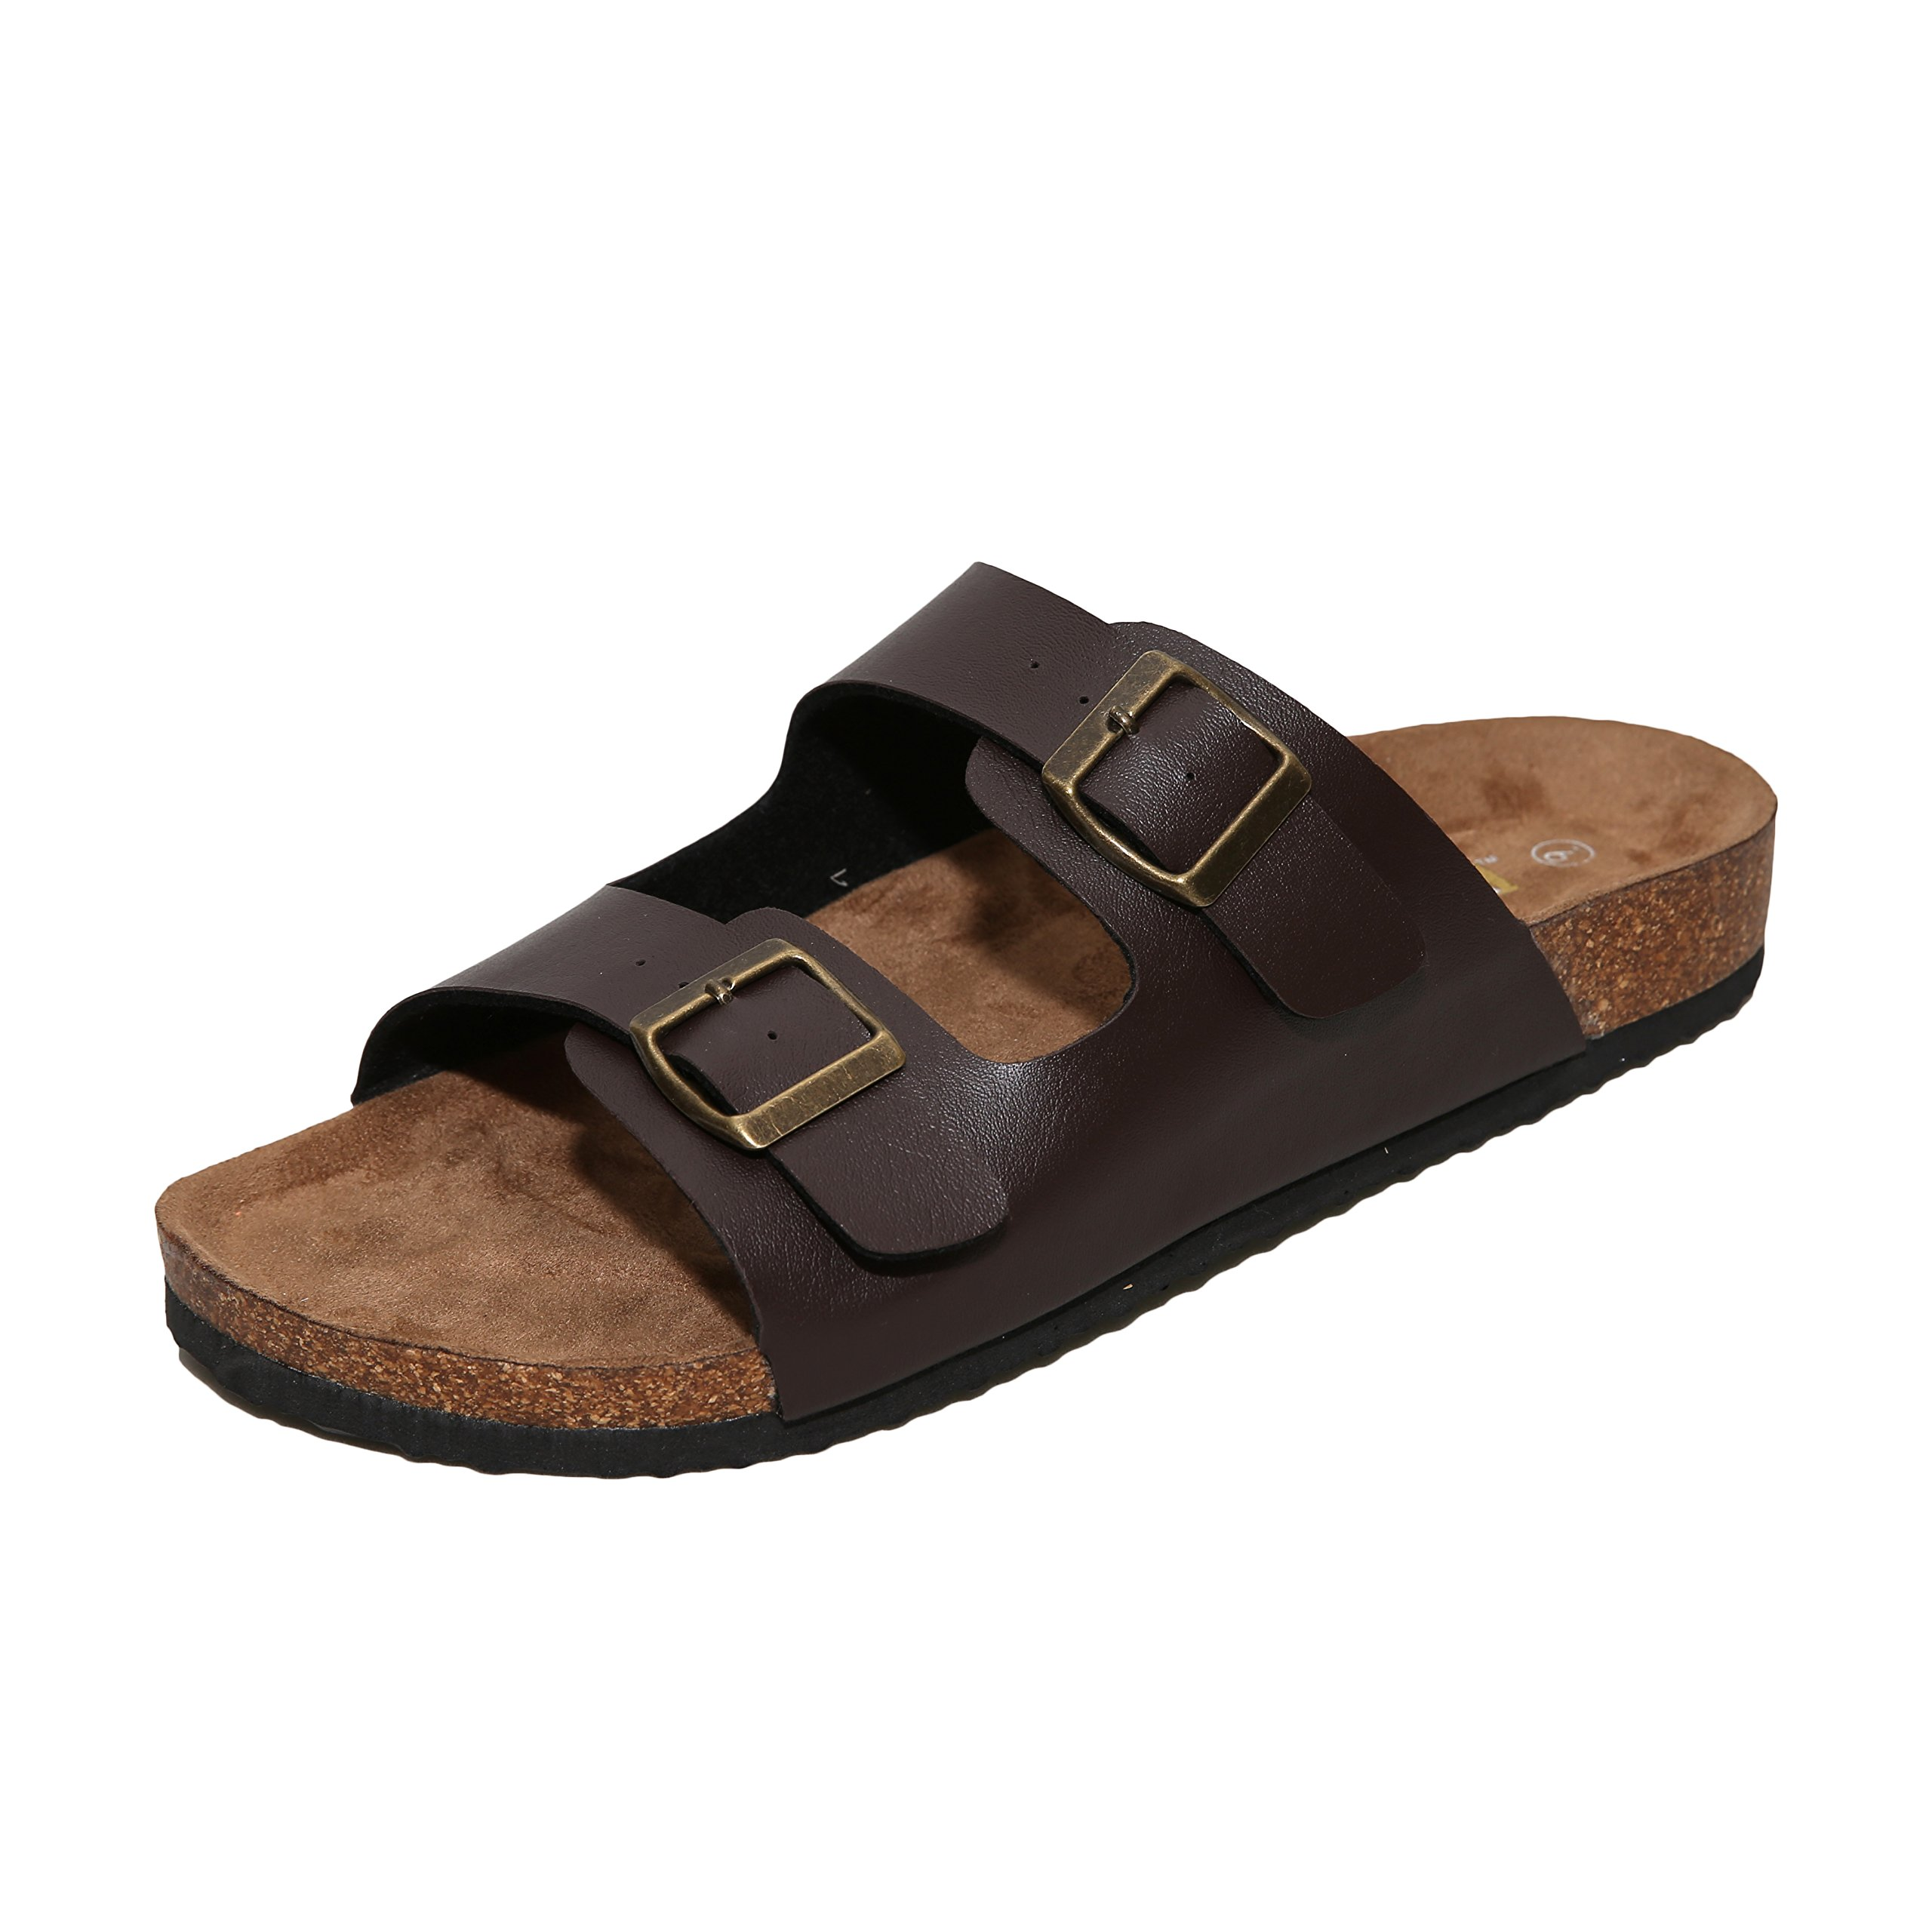 WTW Men's Sandals (8 D(M) US, Brown)